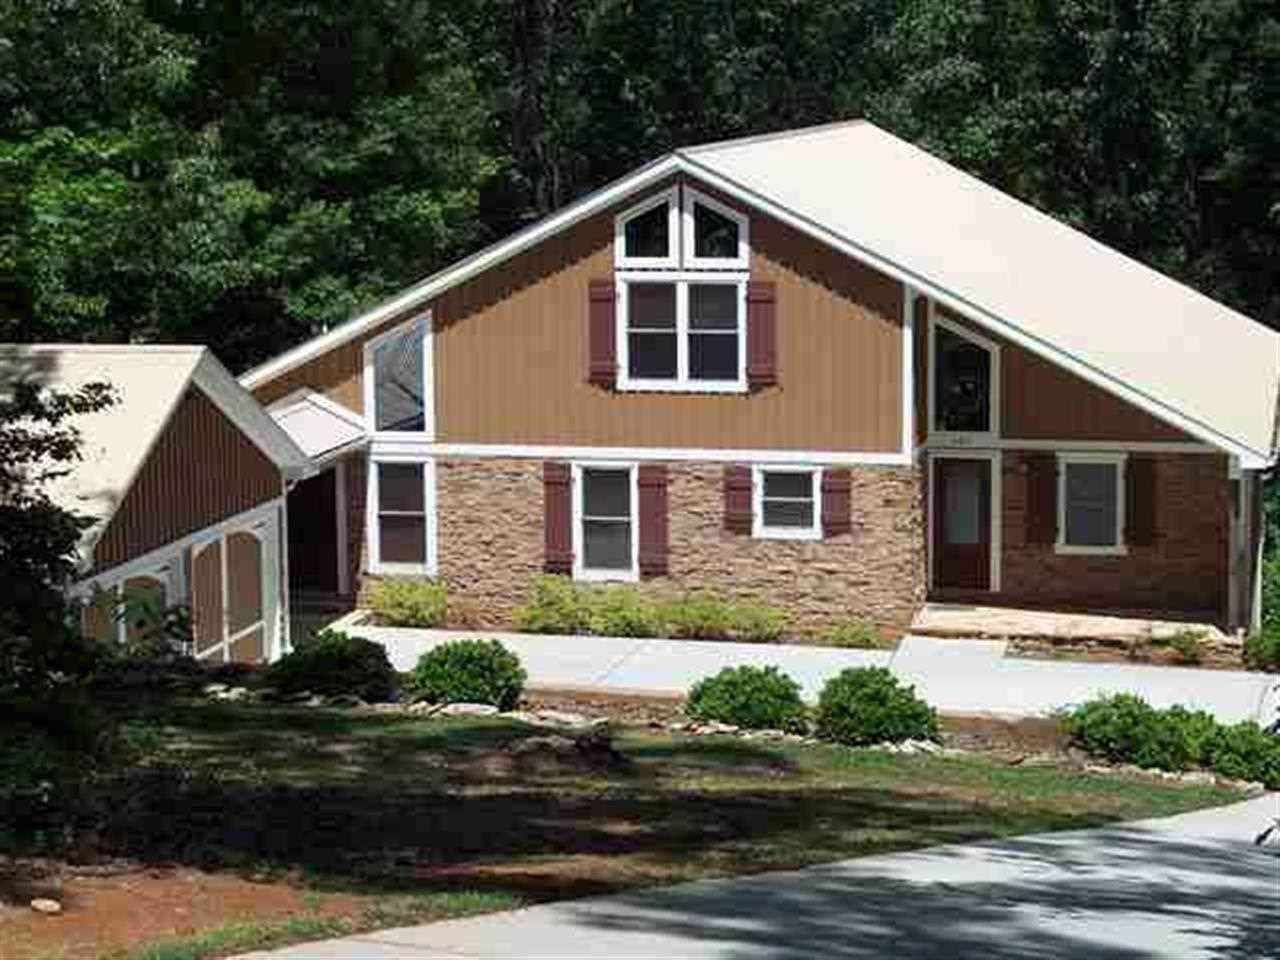 Rental Homes for Rent, ListingId:28761841, location: 422 Overlook Dr Fair Play 29643